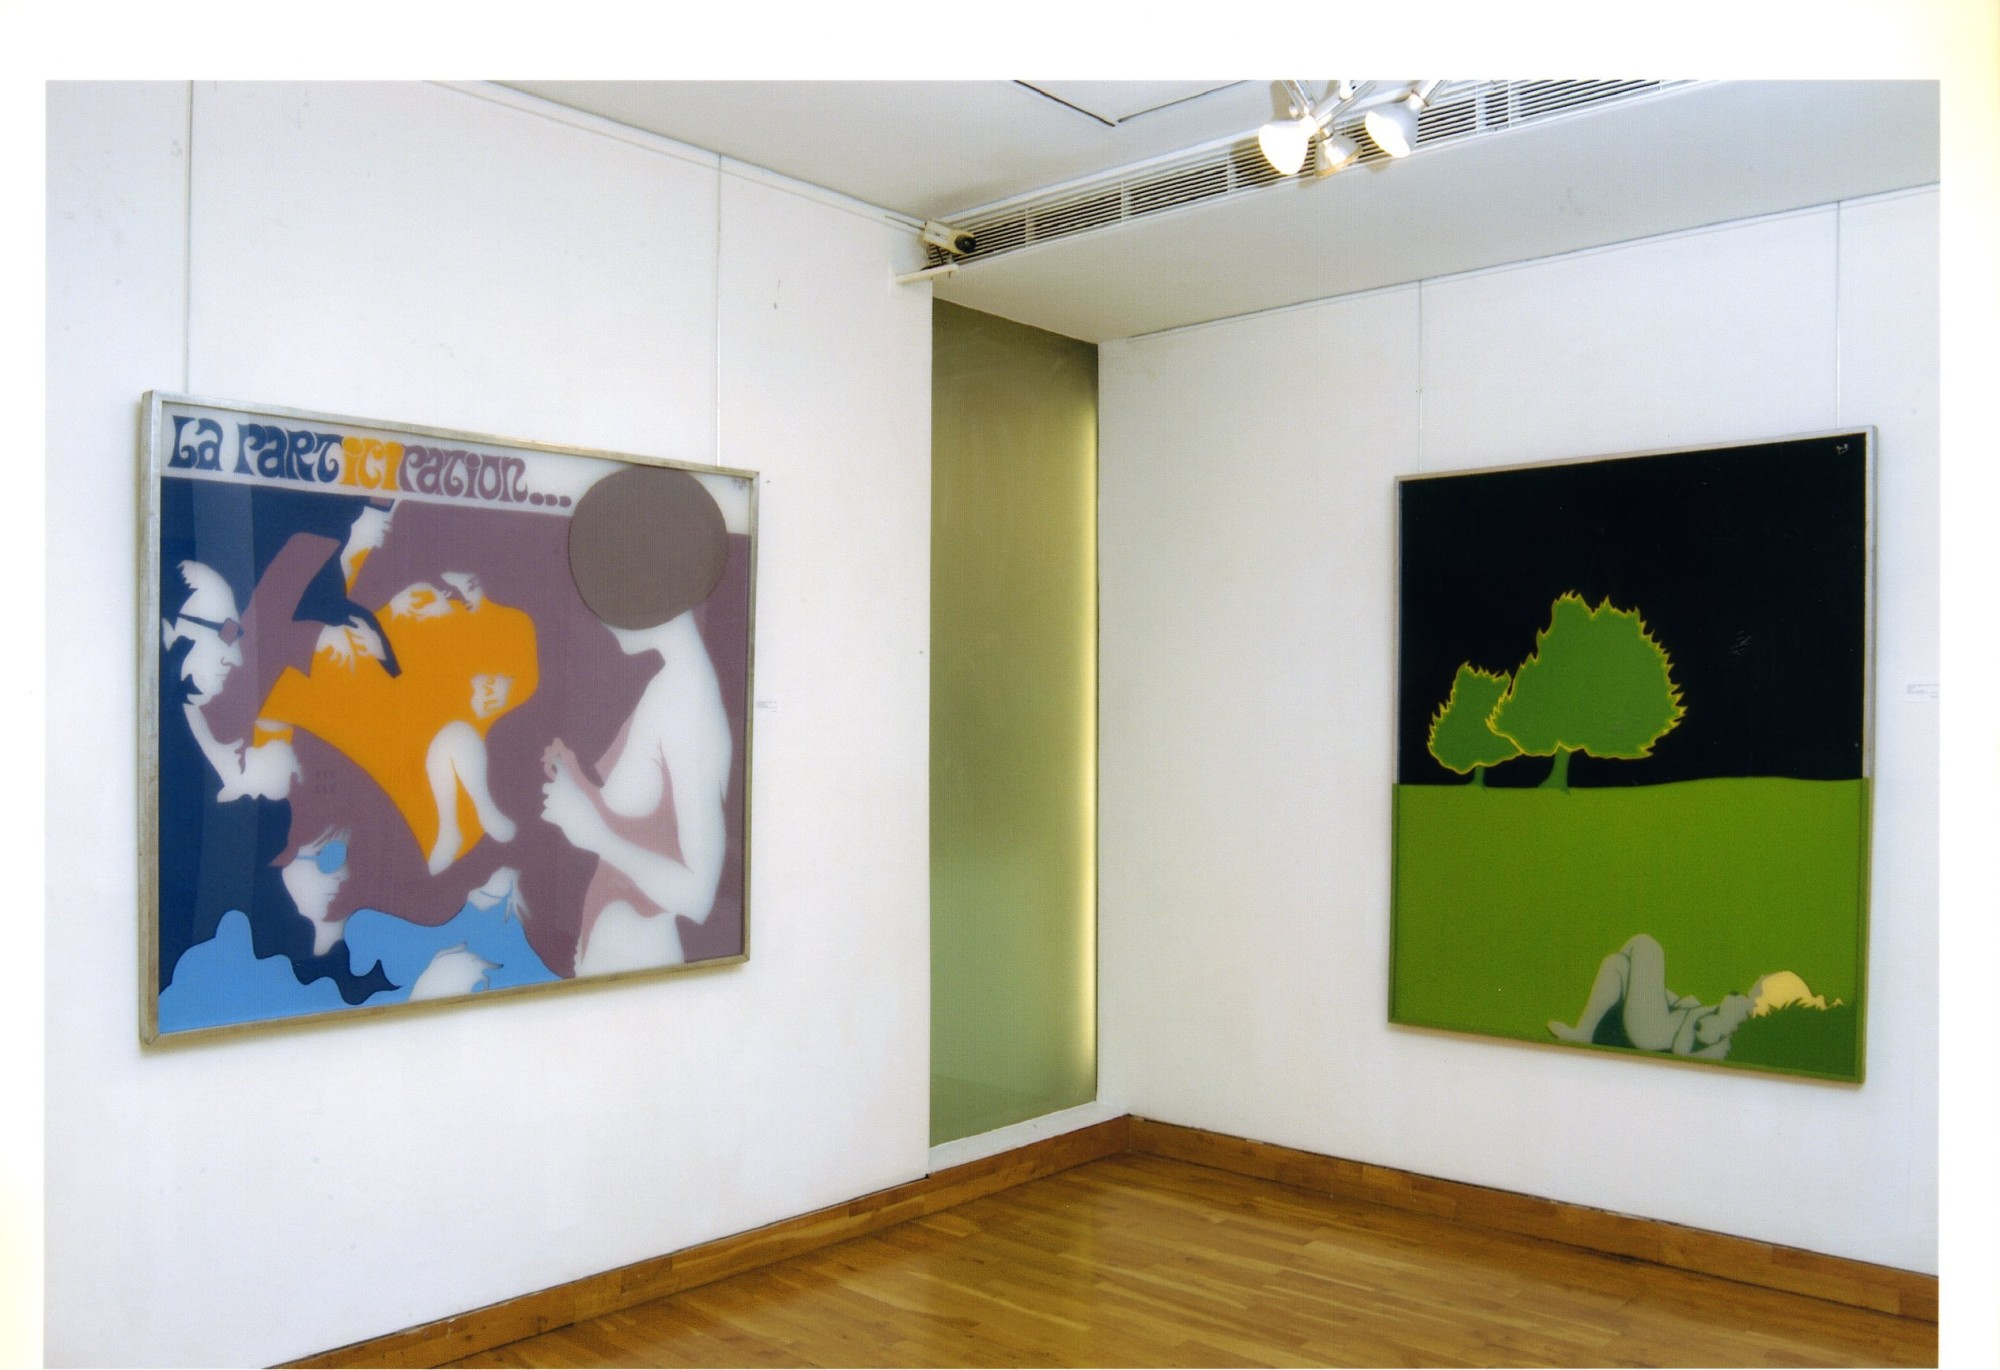 """<span class=""""link fancybox-details-link""""><a href=""""/exhibitions/119/works/image_standalone503/"""">View Detail Page</a></span><p>EVELYNE AXELL   FROM POP ART TO PARADISE   24 MAR - 4 JUL 2005   Installation View</p>"""